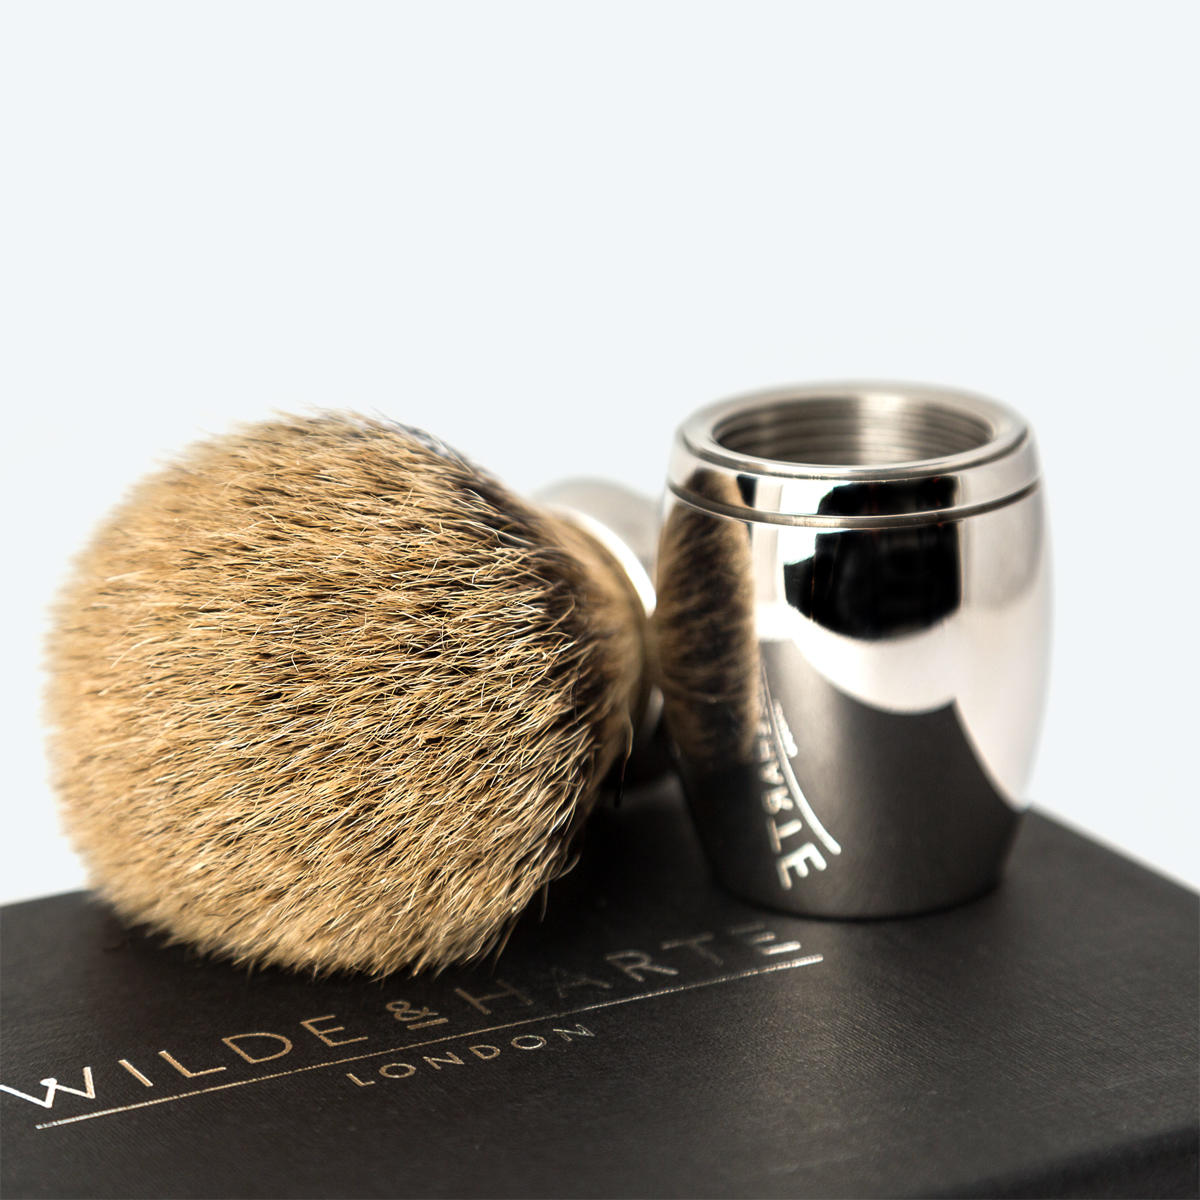 best badger shaving brush UK Wilde and Harte